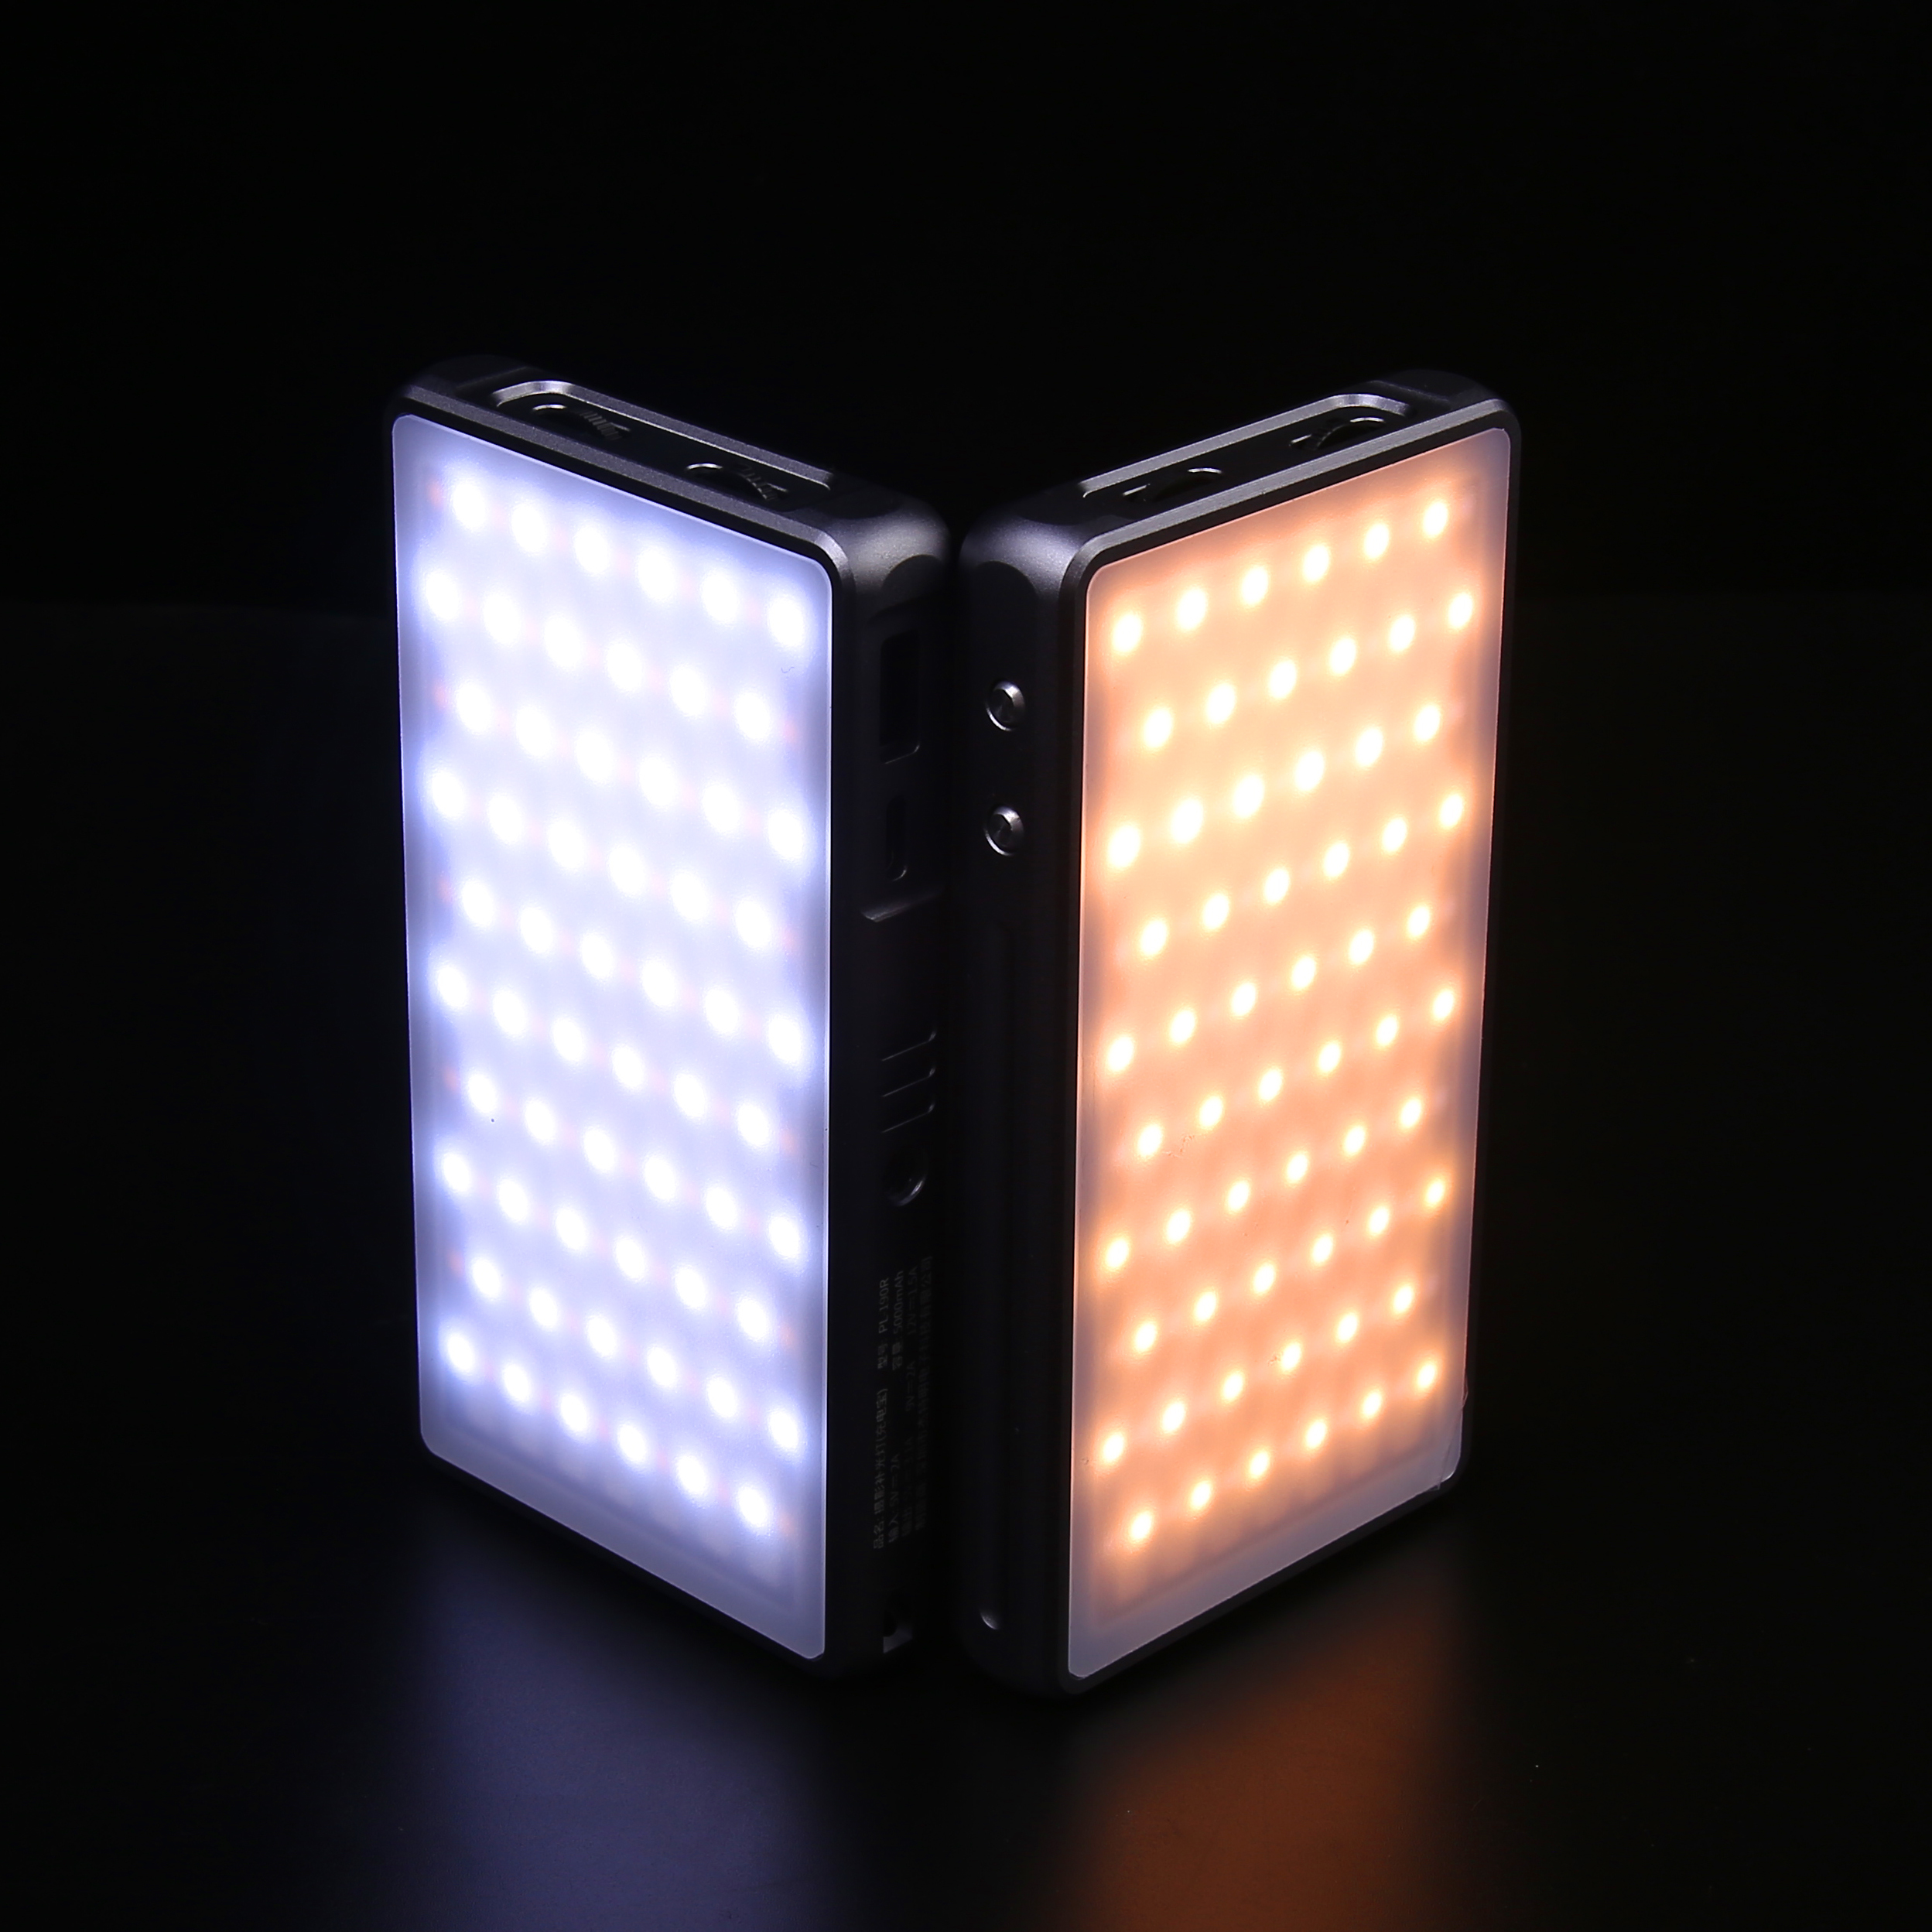 Buddiesman PL-190R Pocket LED Light 2500K-8500K RGB Full color Portable Fill Light Photography Lighting for Camera Vlog Video